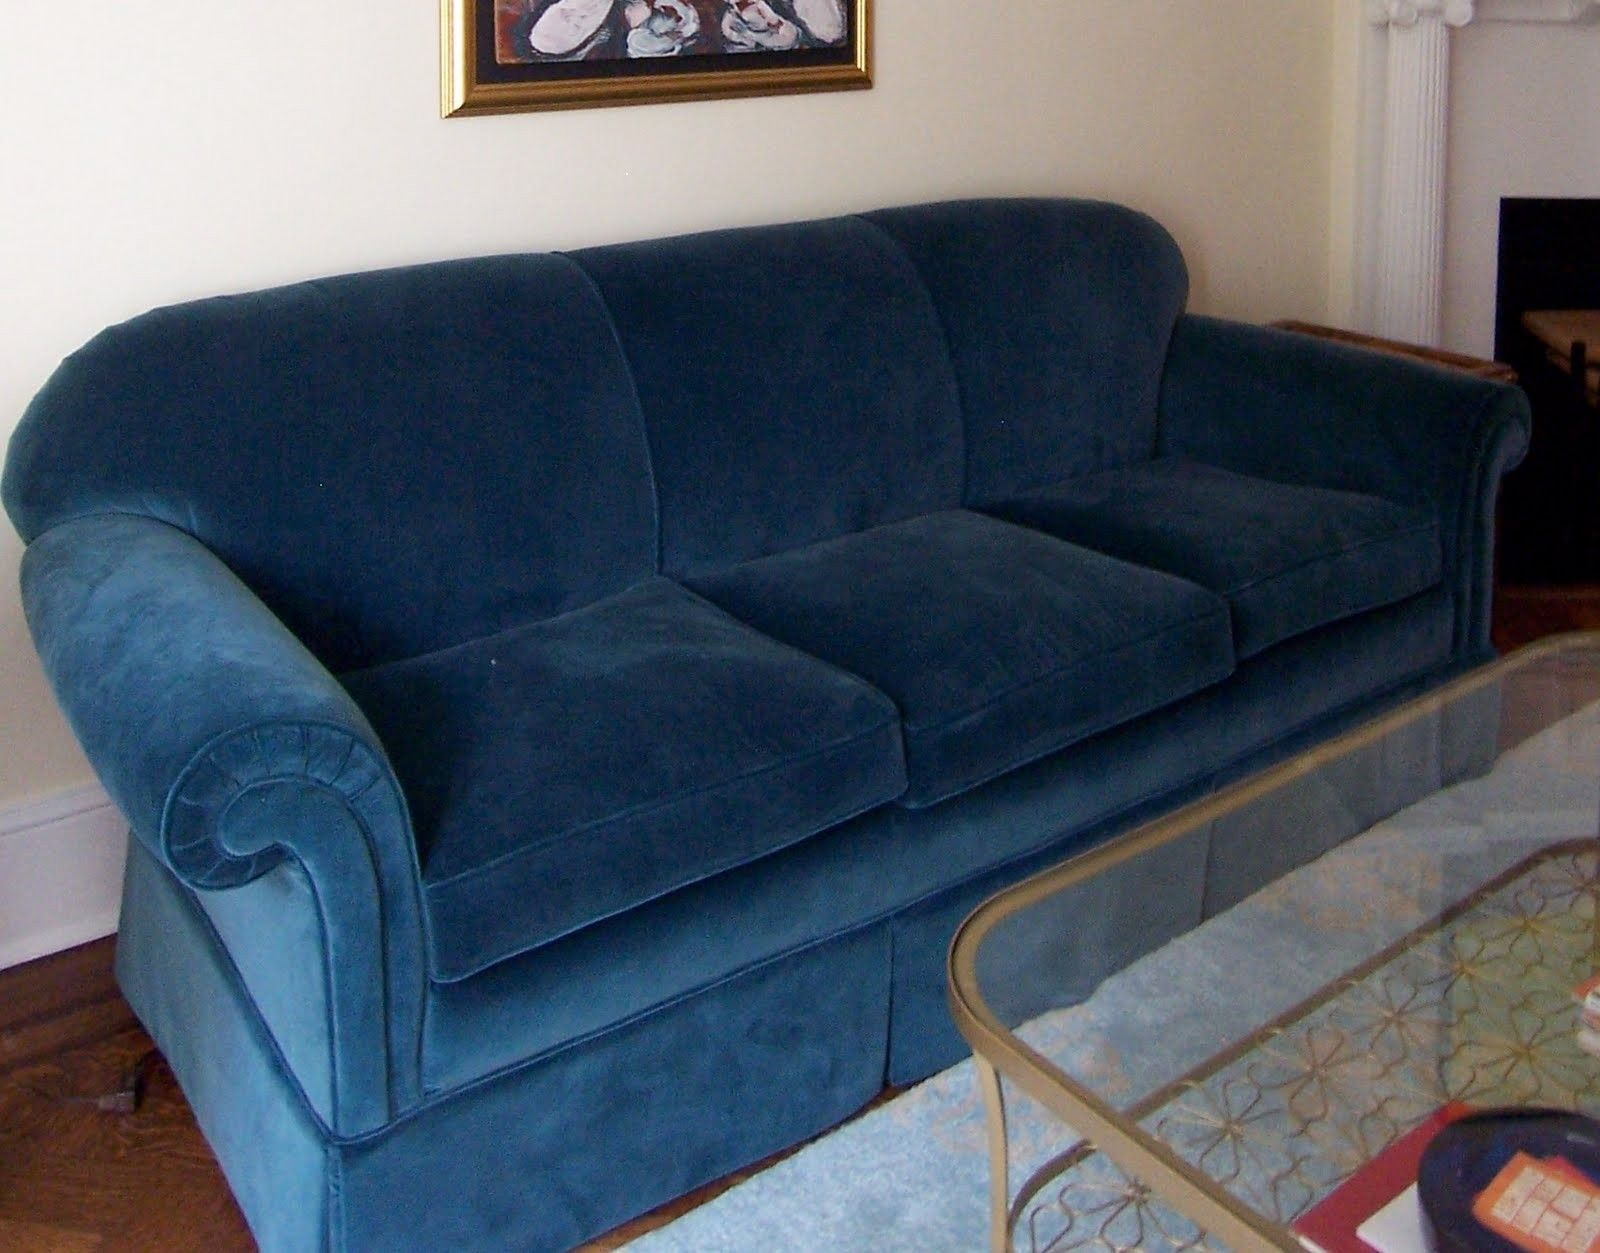 Superbe Best Of Cost To Reupholster A Sofa   Average Cost To Reupholster A Couch  Uk, Average Cost To Reupholster A Sectional Sofa, How Much Does It Cost To  Reuphol, ...